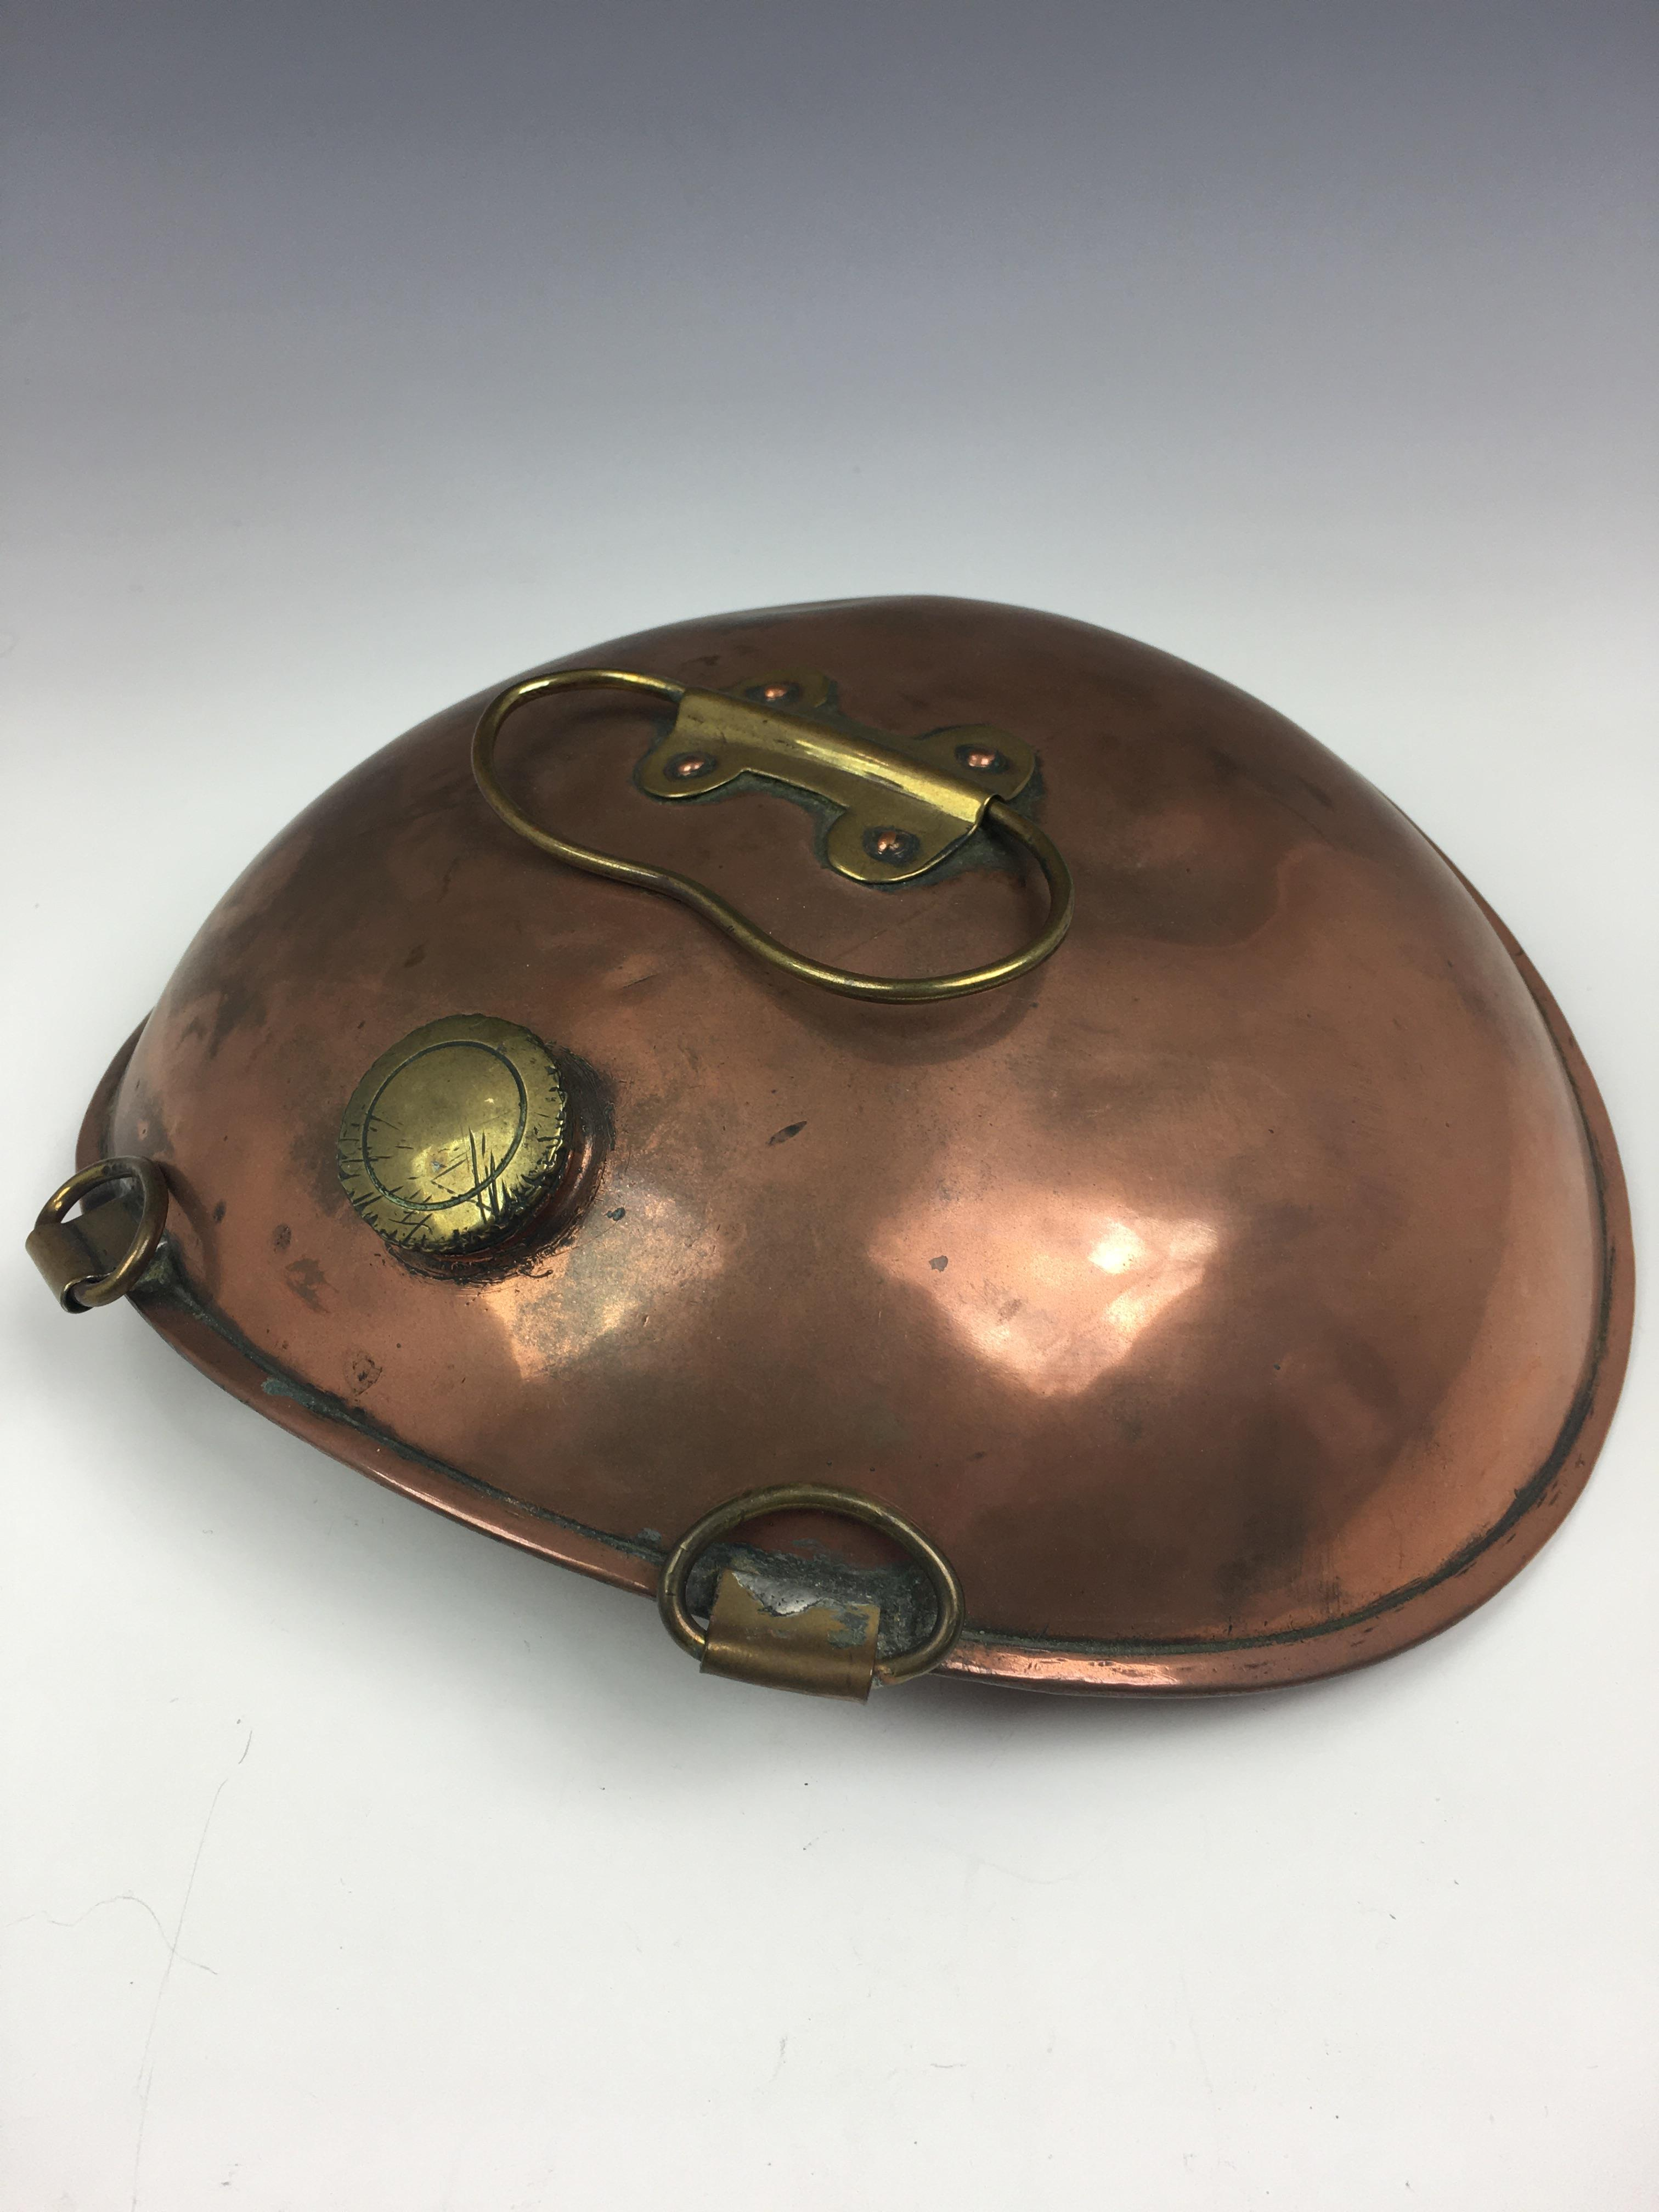 Lot 370 - An antique oval dished copper belly warmer, probably Victorian, having brass suspension strap